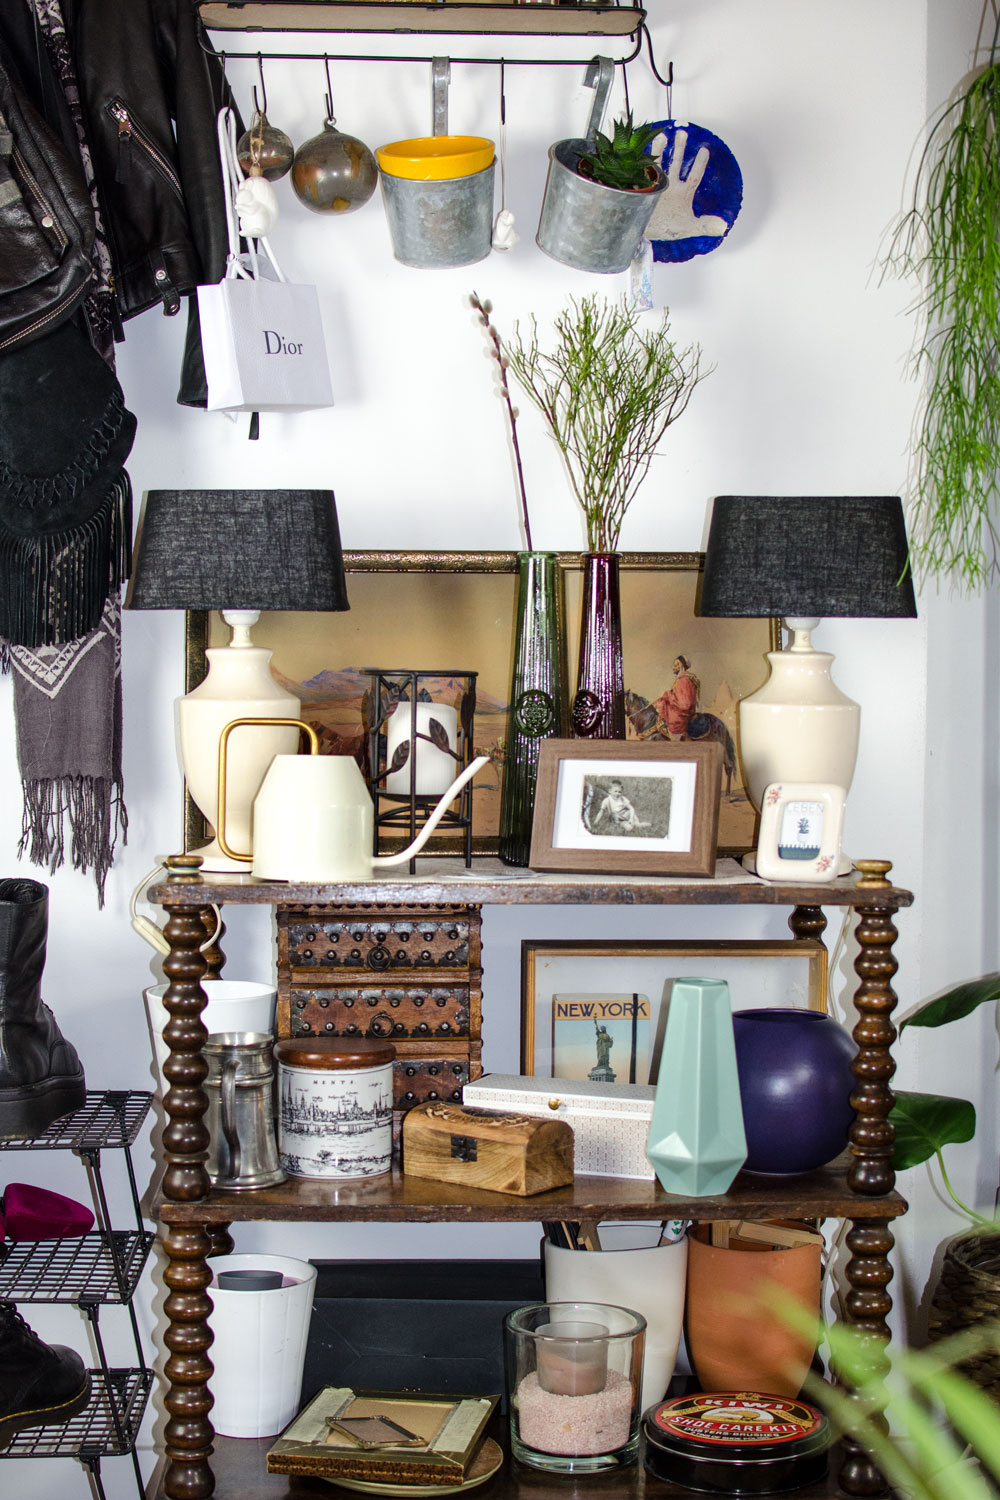 Eclectic Bohemian Living | so Geht's